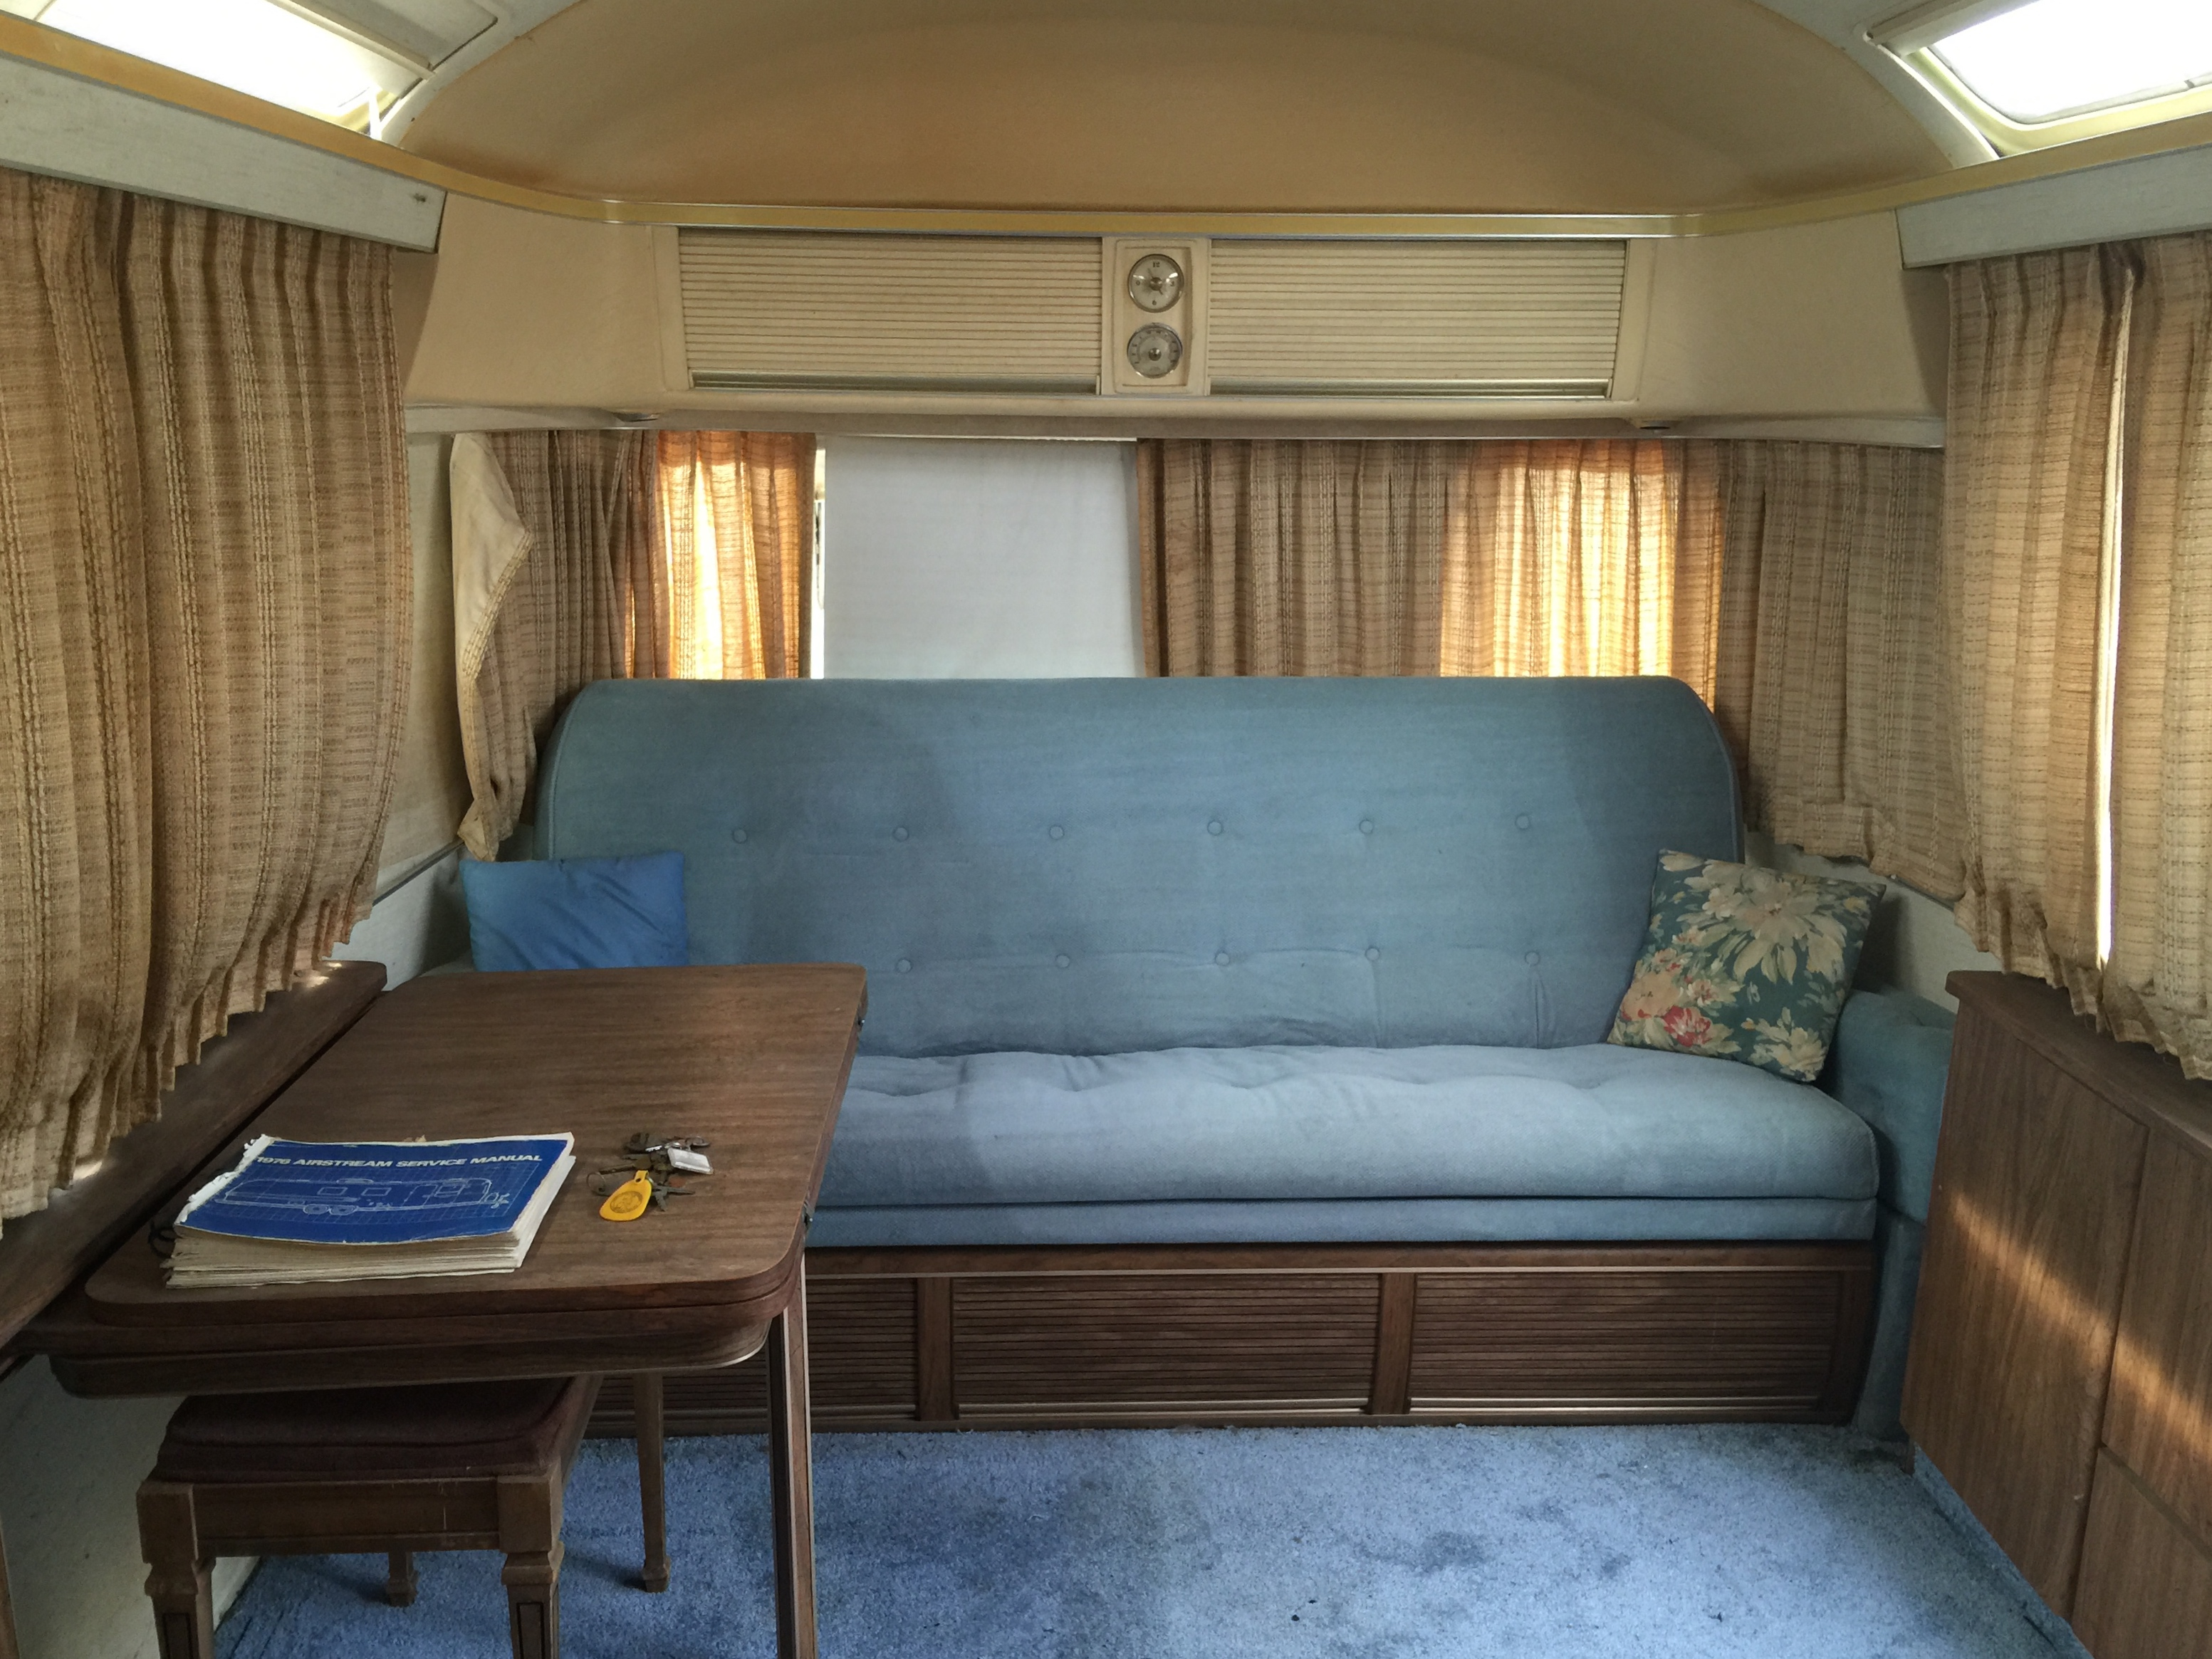 1976 Land Yacht Sovereign Airstream in Orange County, California.